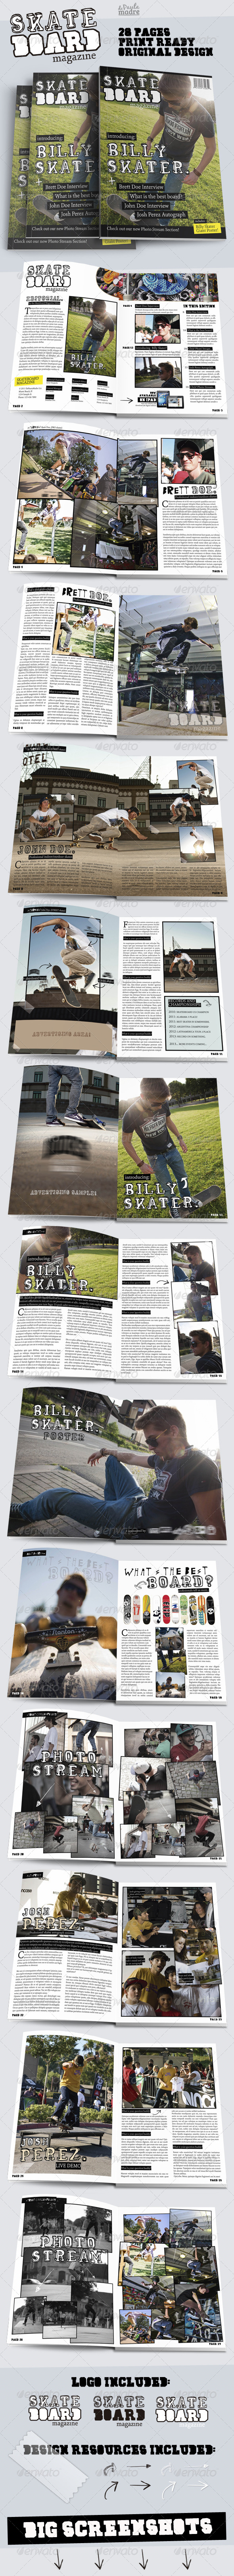 GraphicRiver Skateboard Magazine Template 6395145